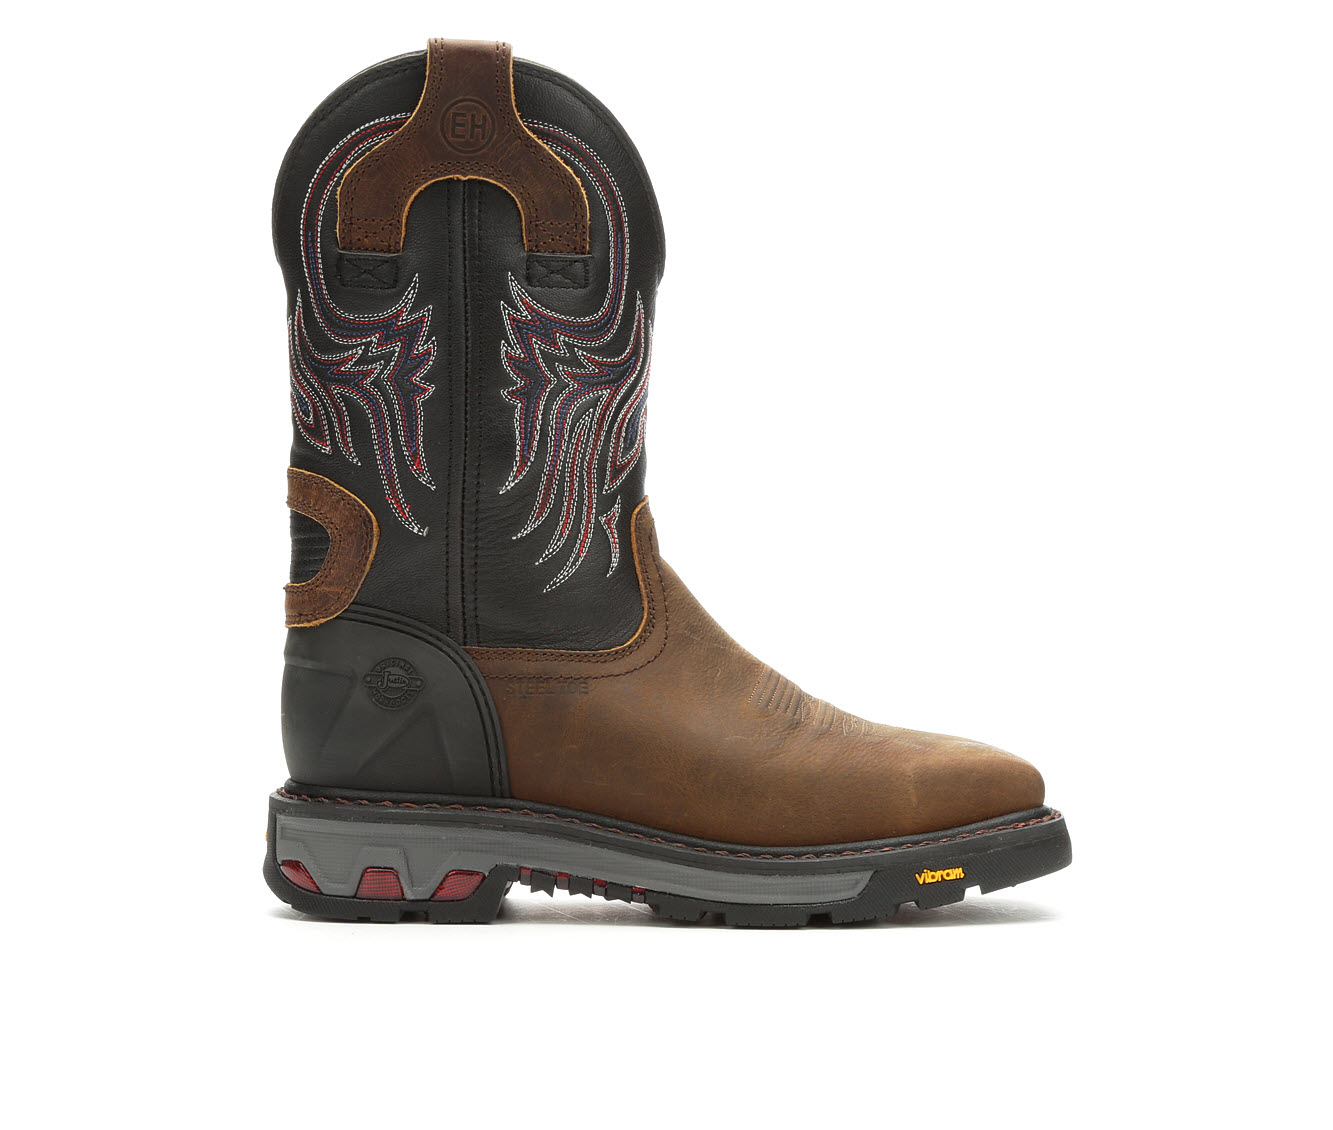 Justin Boots Commander Steel Toe Men's Boots (Brown Leather)